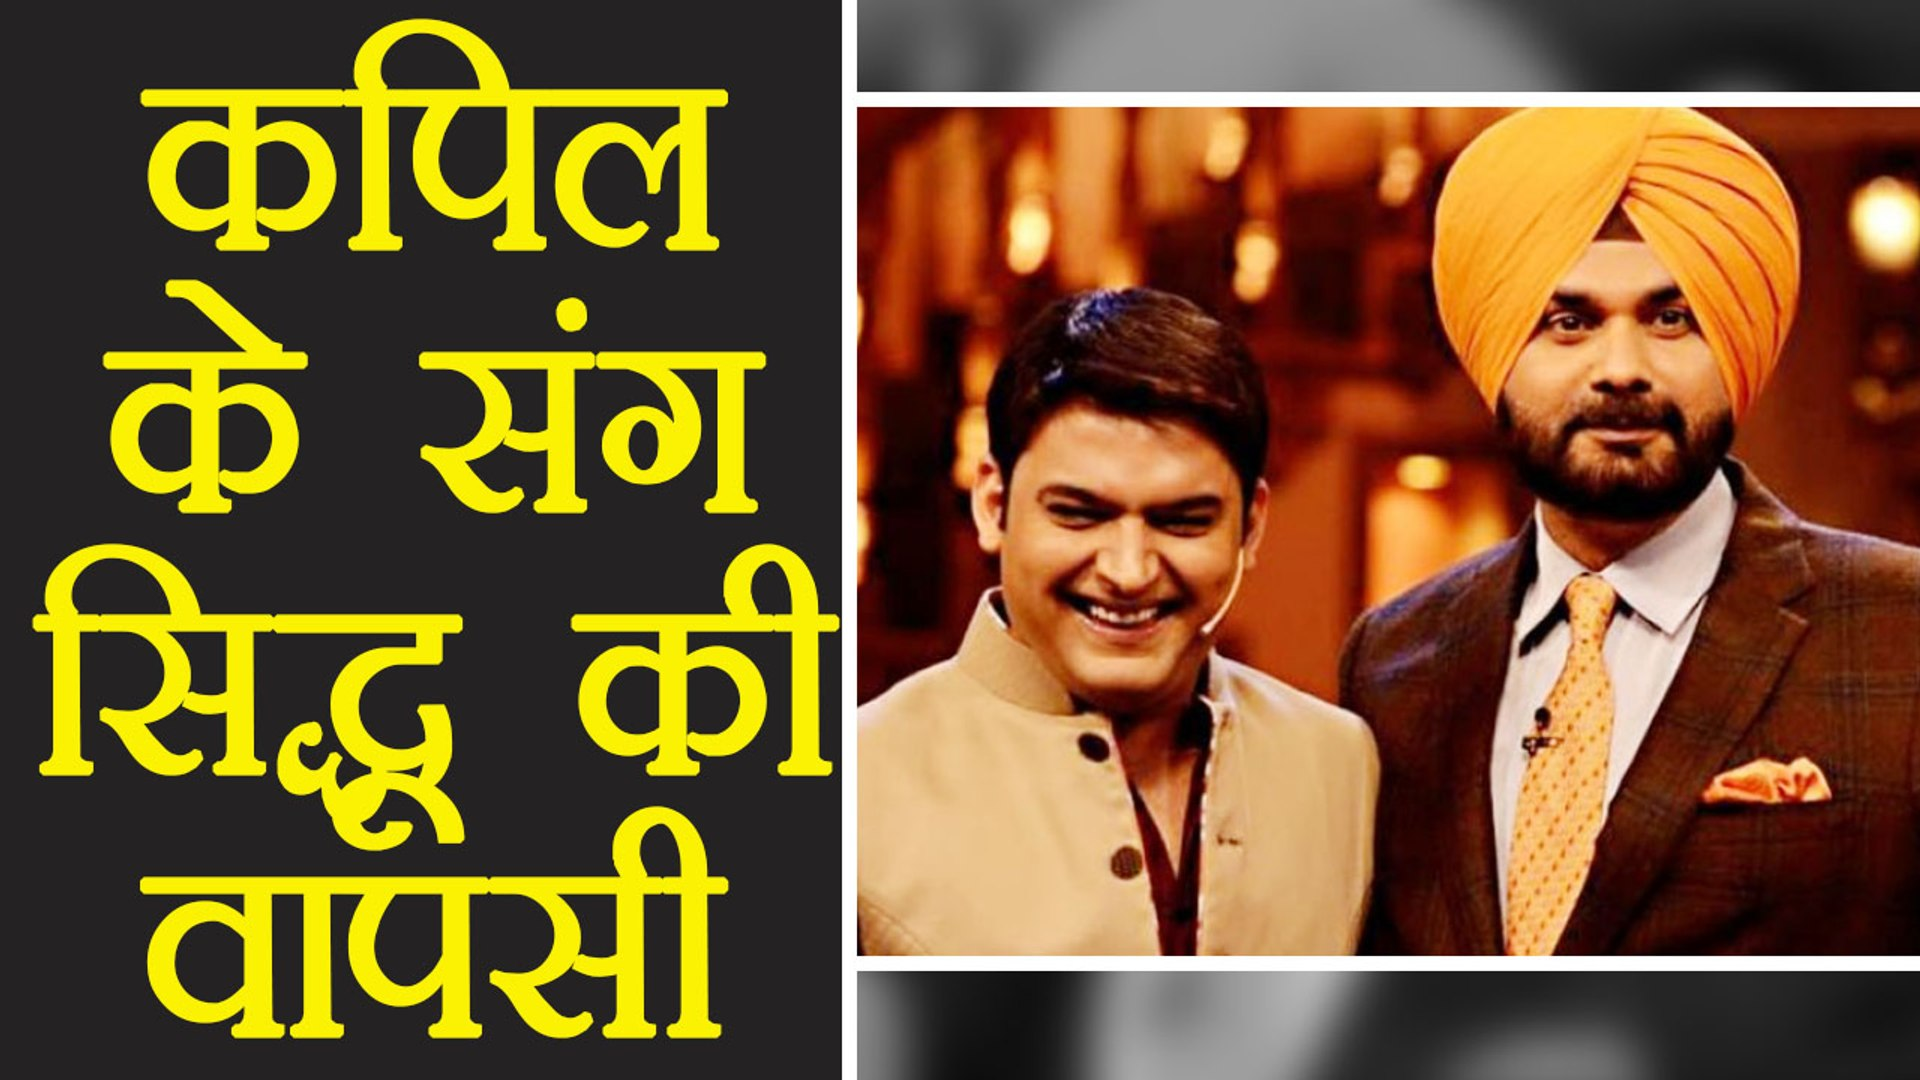 Family Time With Kapil : Navjot Singh Sidhu to JOIN Kapil Sharma's new show ! | FilmiBeat